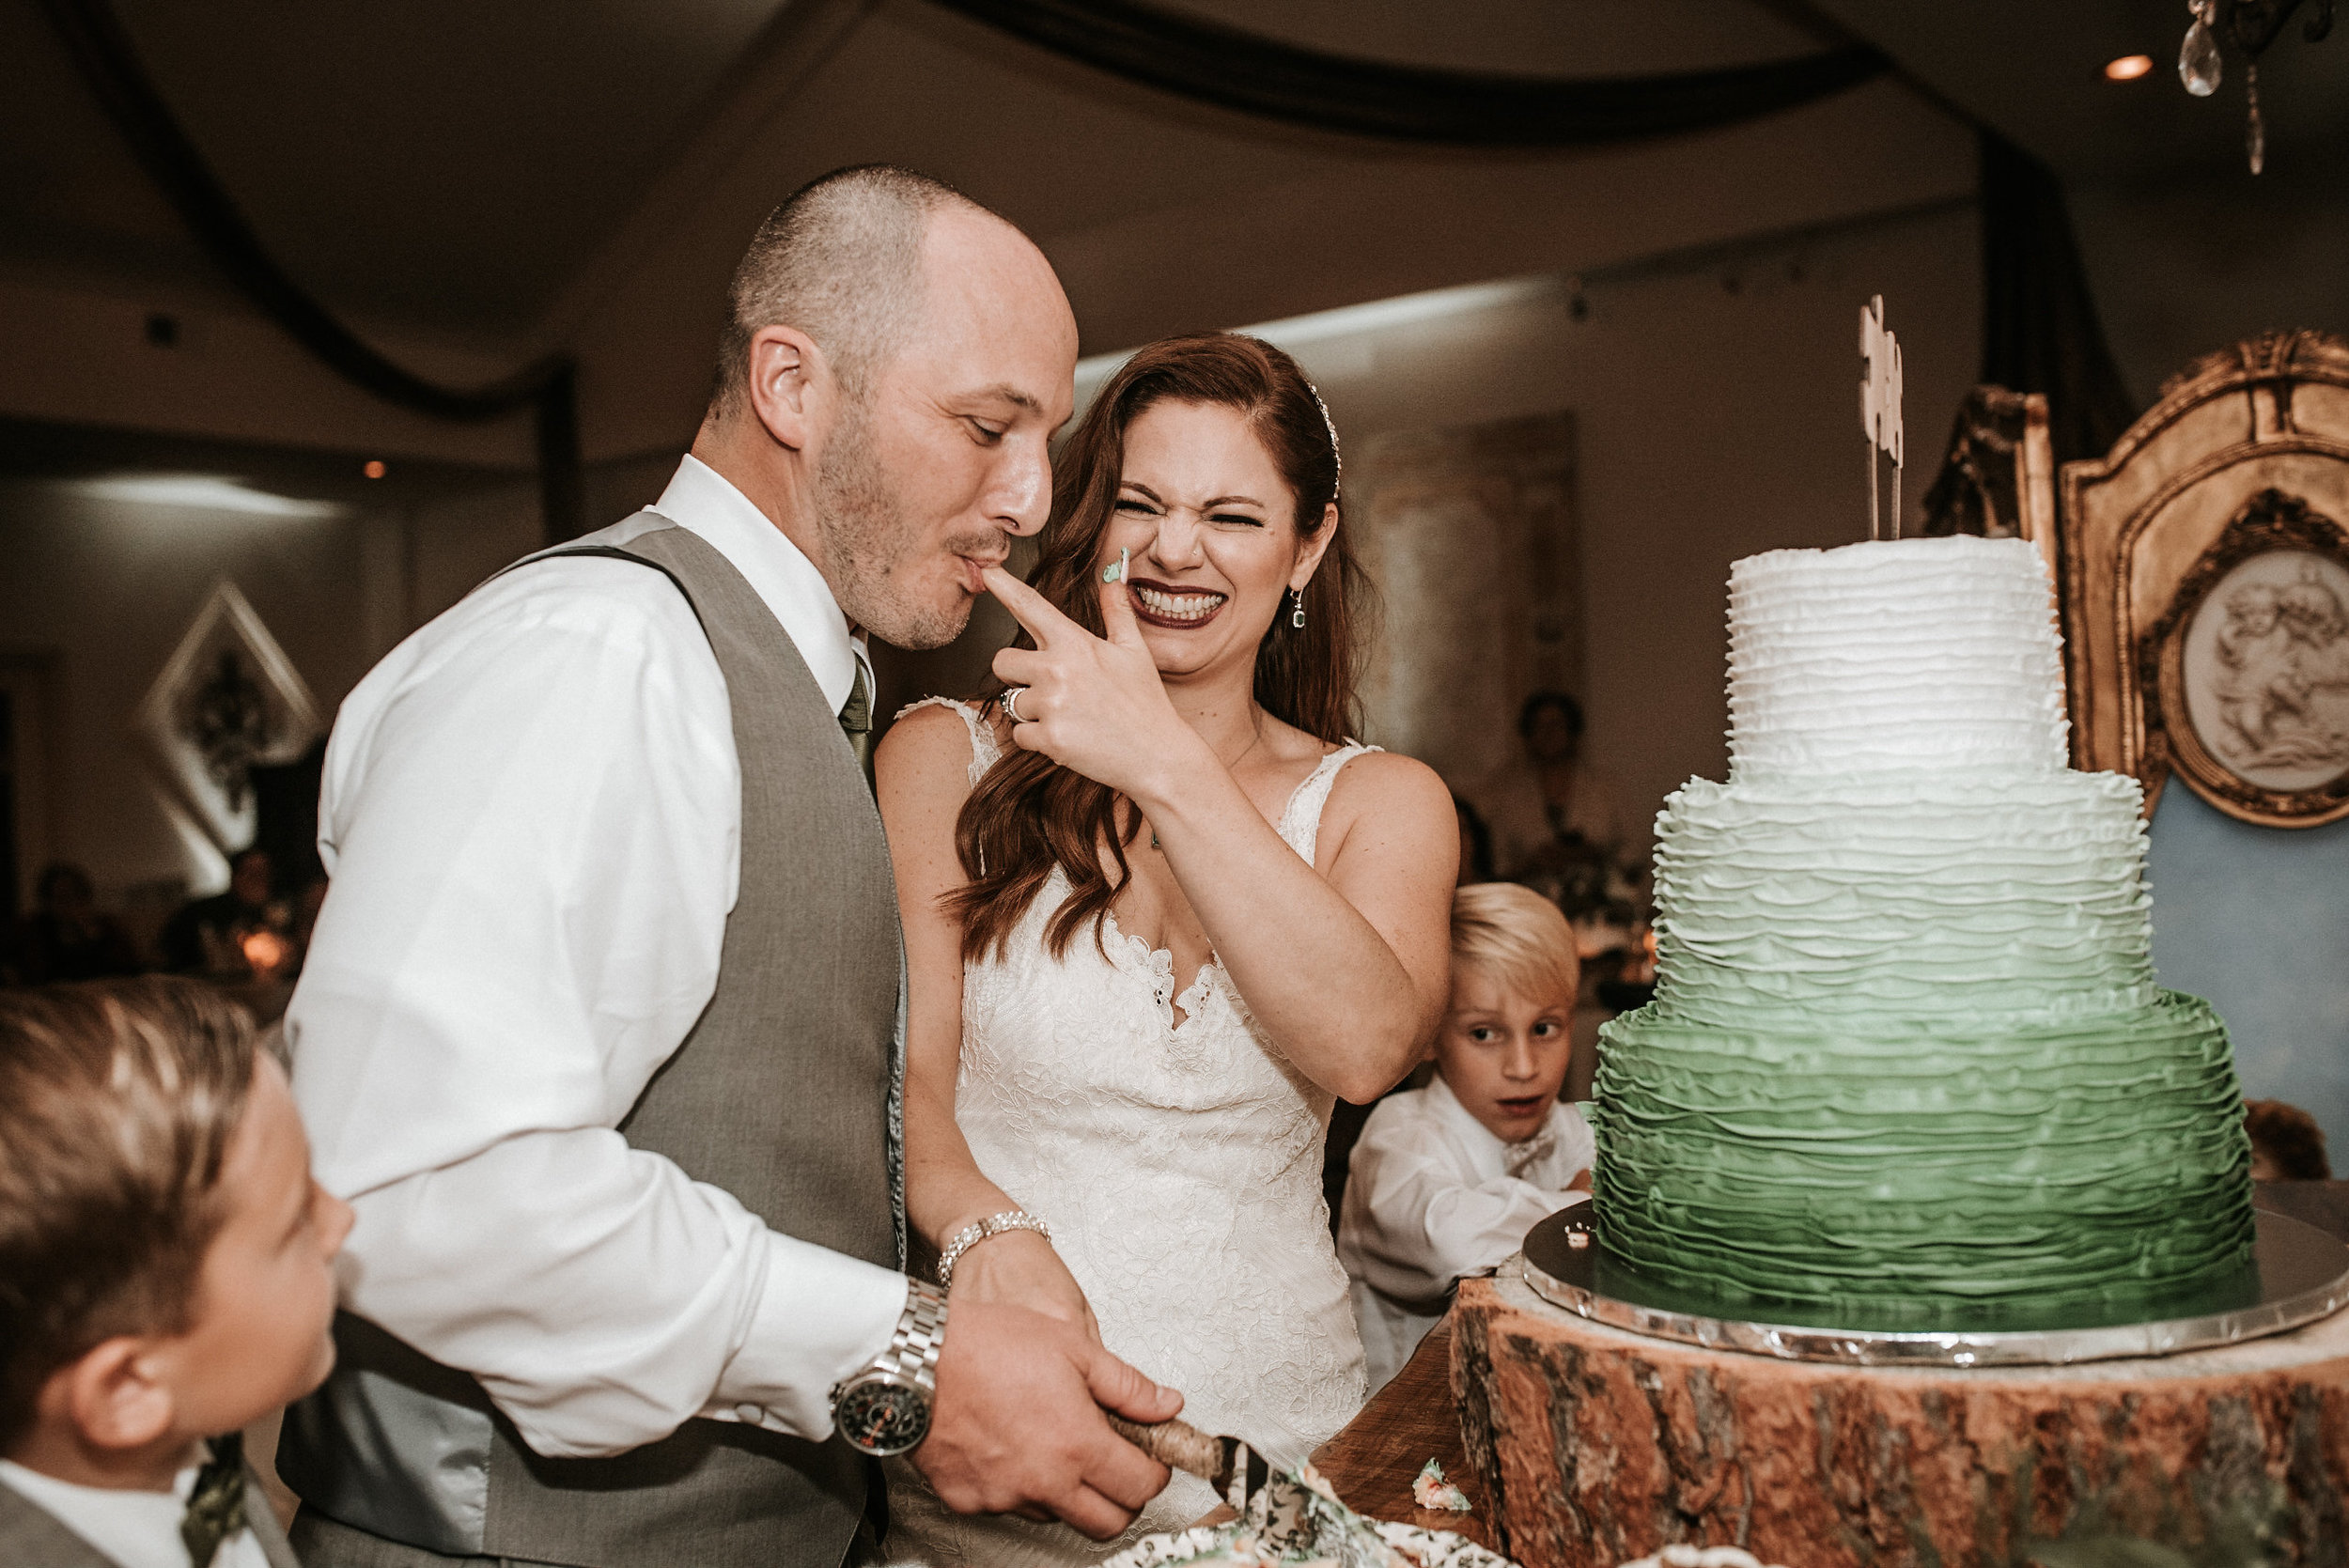 Bride feeding groom cake